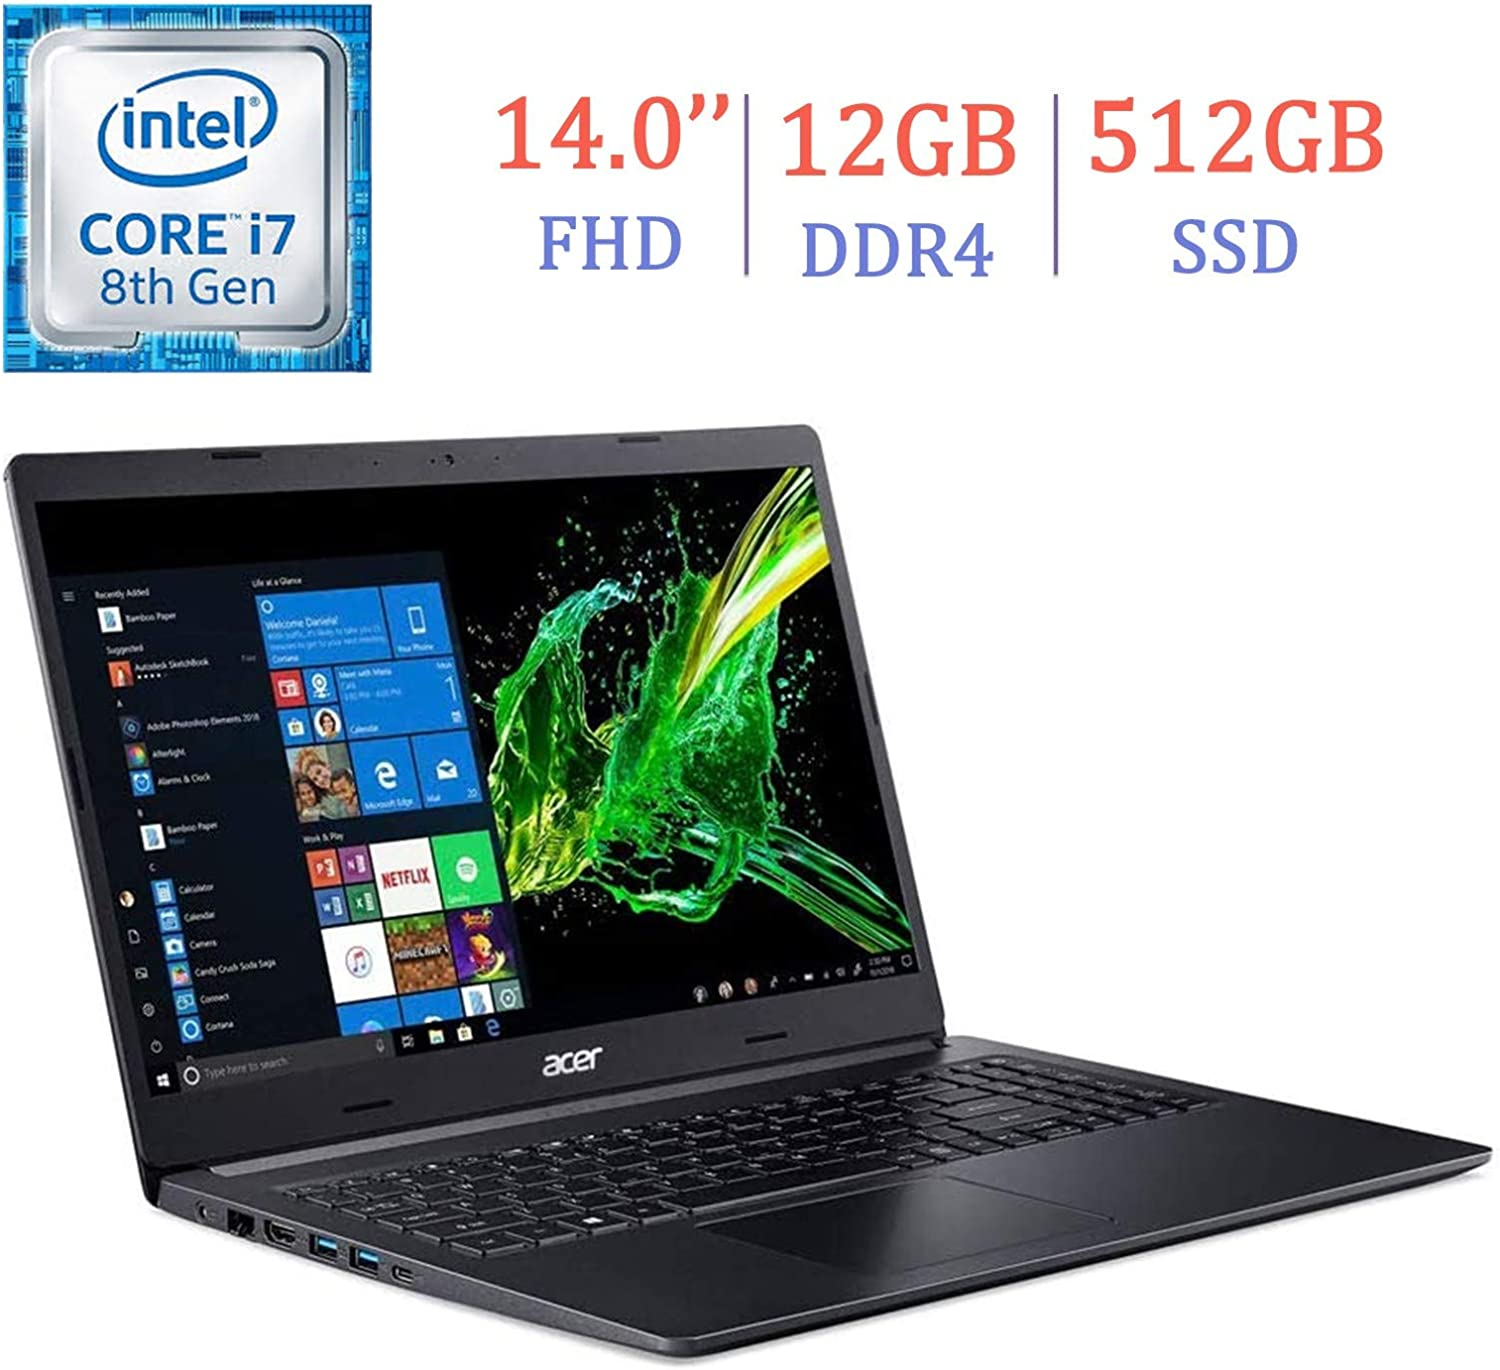 Acer Aspire 5 14-inch FHD (1920x1080) IPS Display Laptop PC, Intel Quad-Core i7-8565U, 12GB DDR4, 512GB SSD, WiFi, HDMI, USB-C, Bluetooth 5.0, Stereo Speaker, Up to 9.5 Hrs Battery, Windows 10 Home